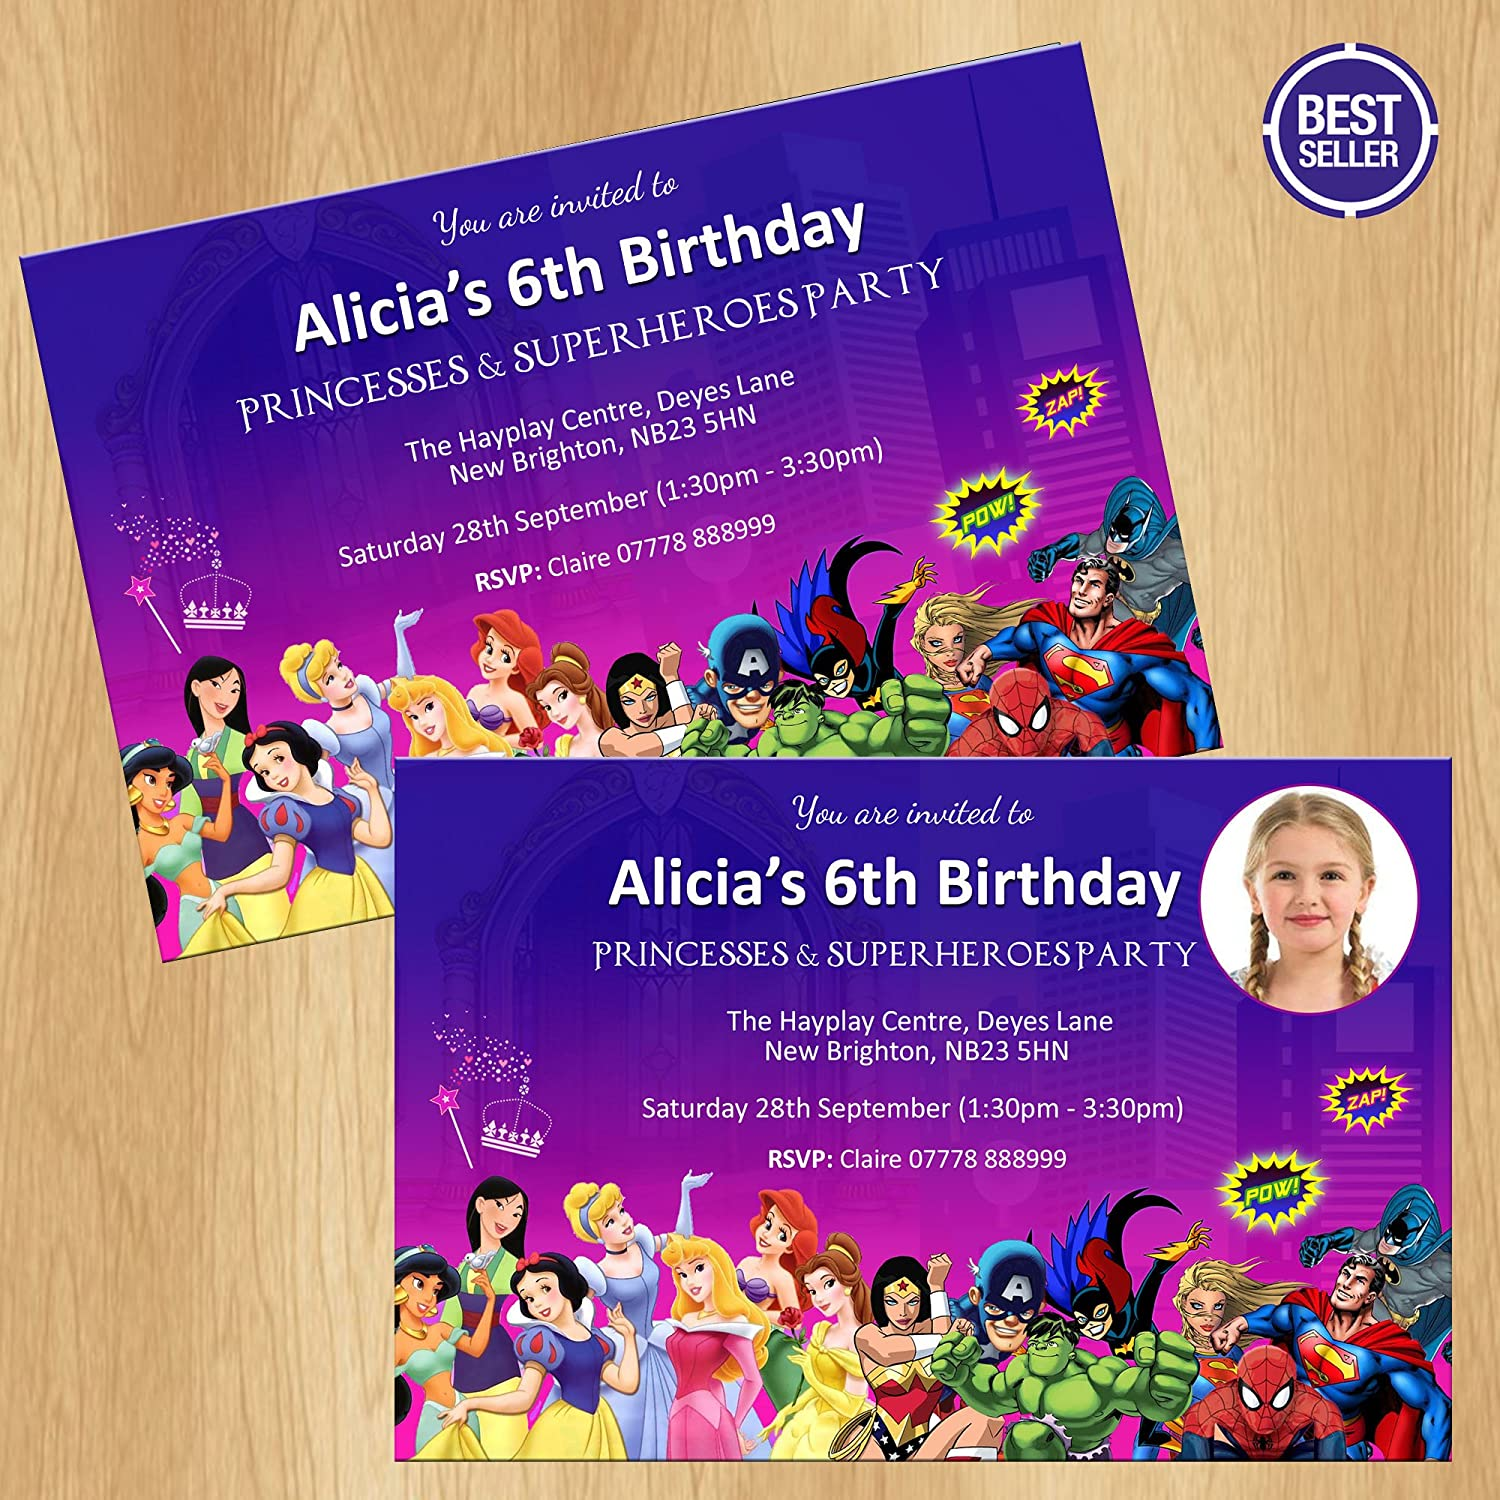 Princess and Superheroes Party Invitations Superhero: Amazon.co.uk ...